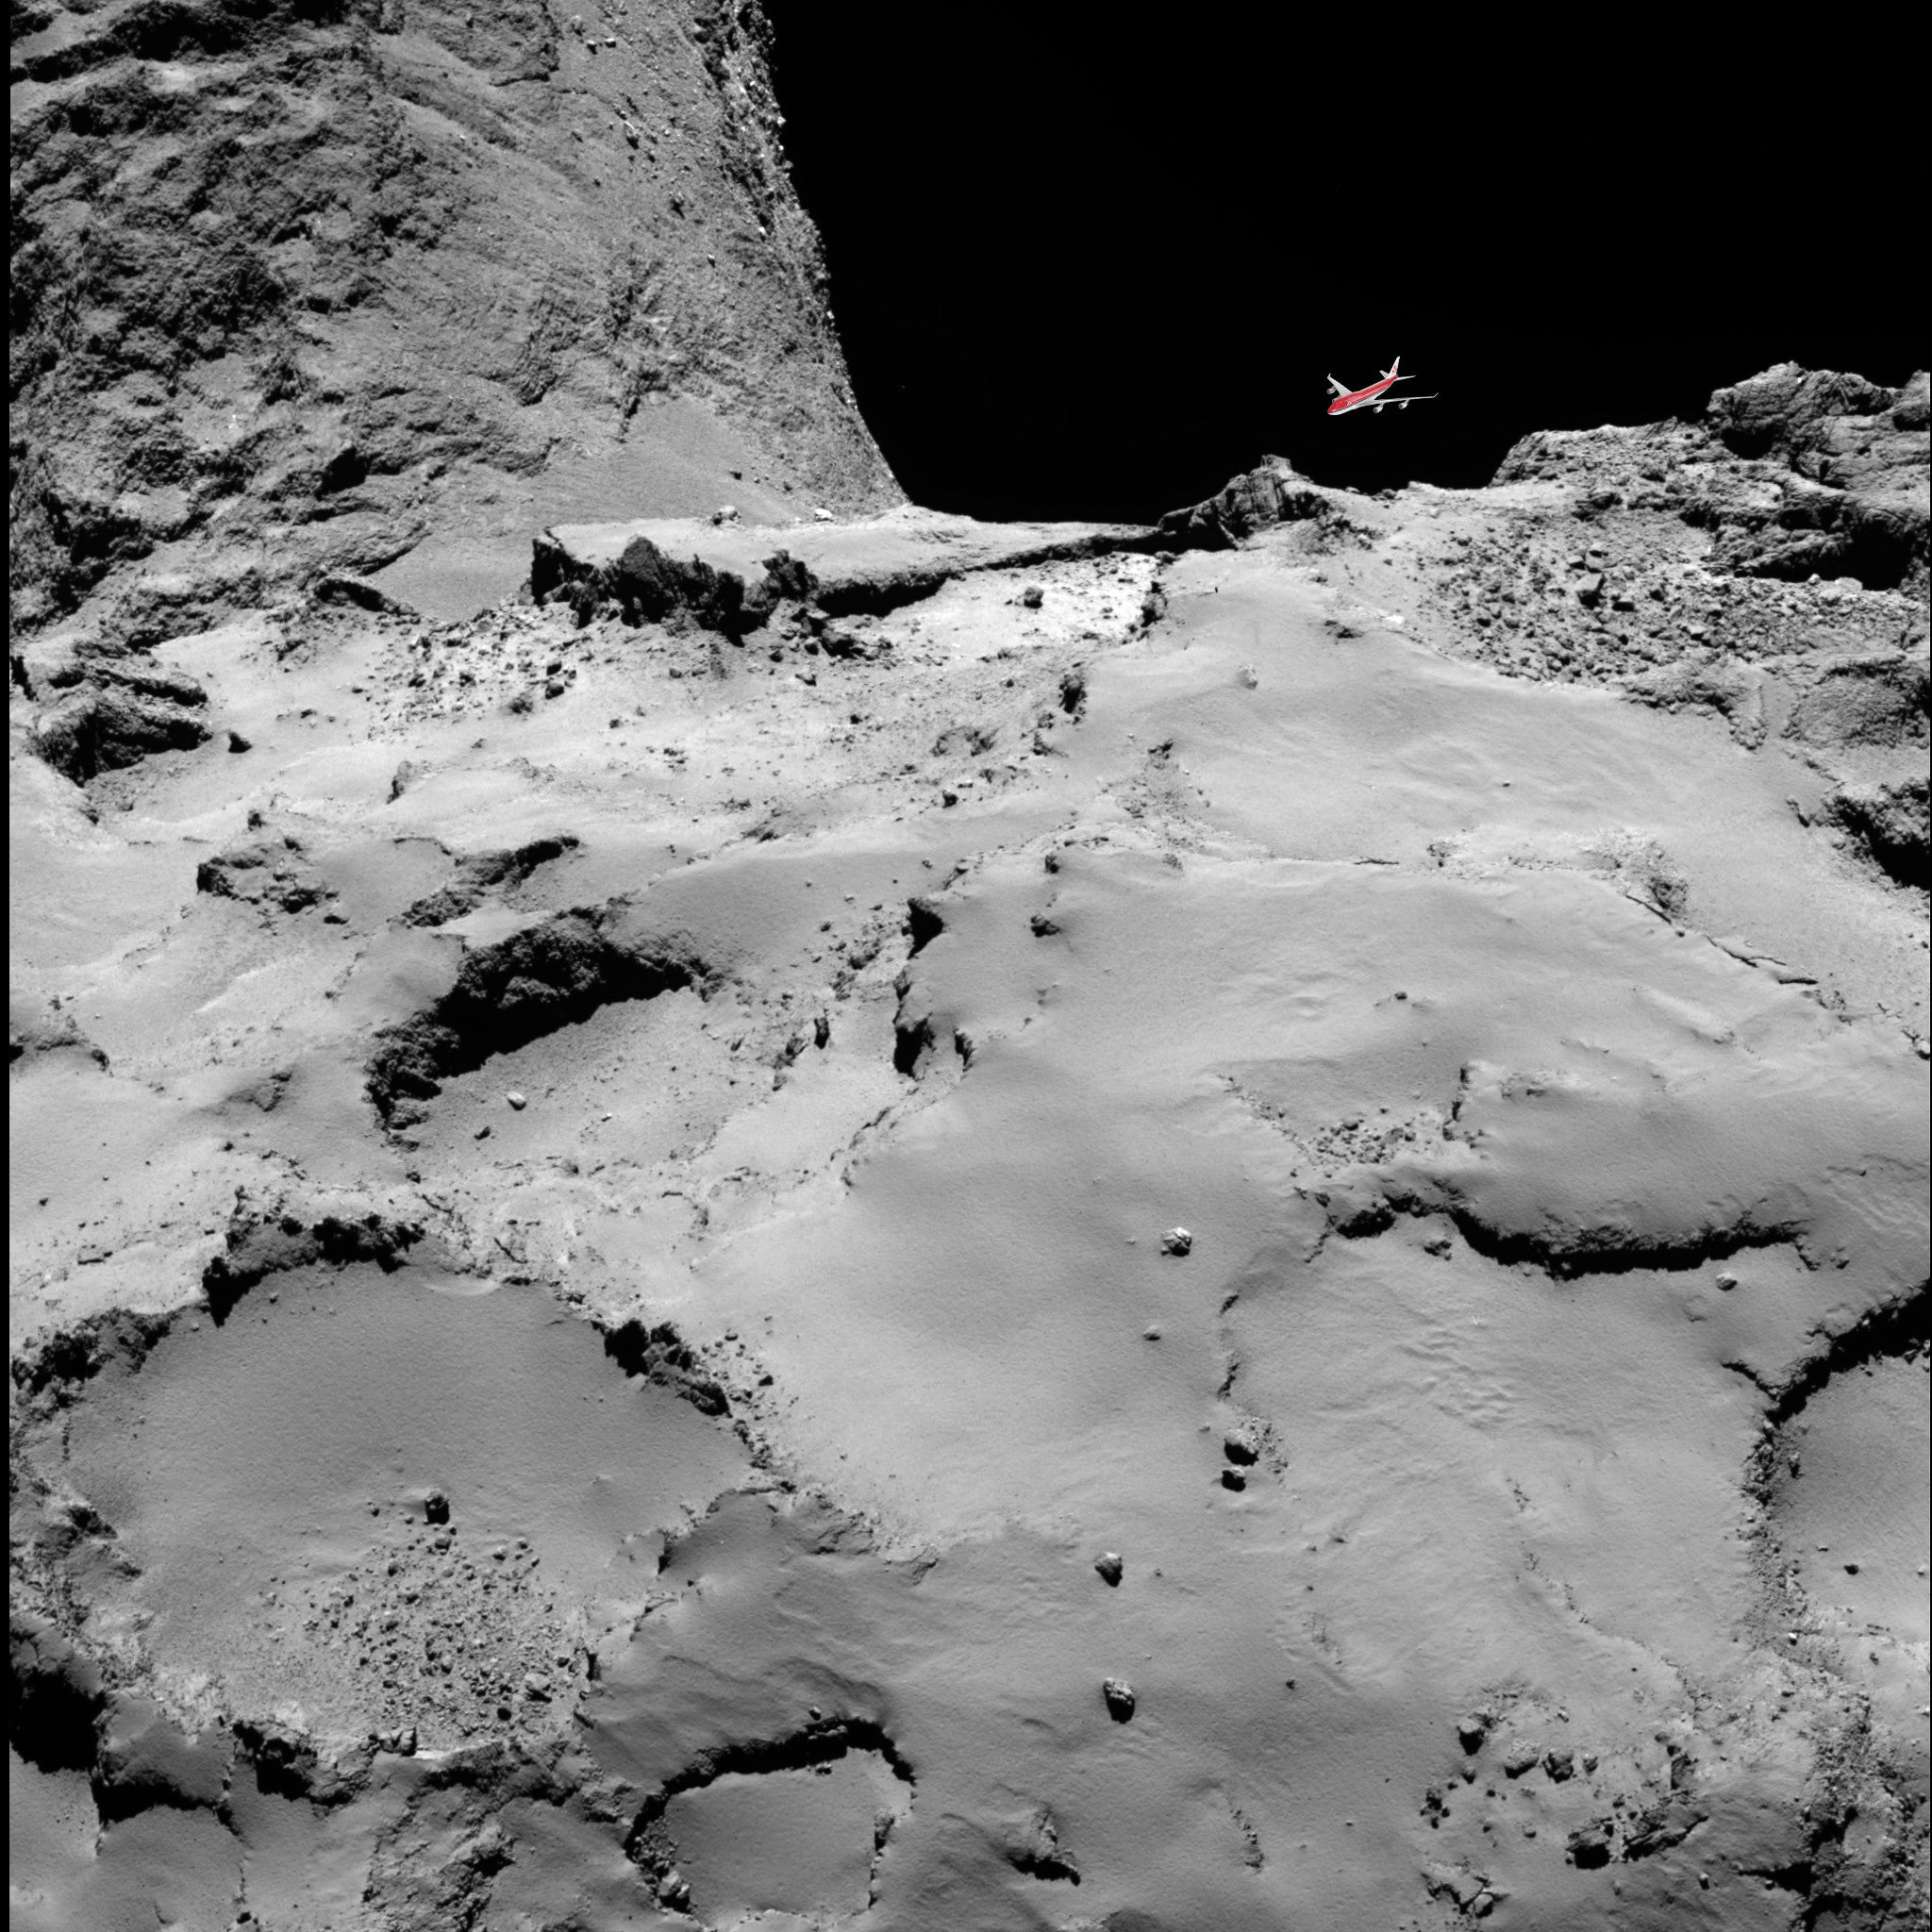 Look at the size of Rosetta's comet compared to a 747!